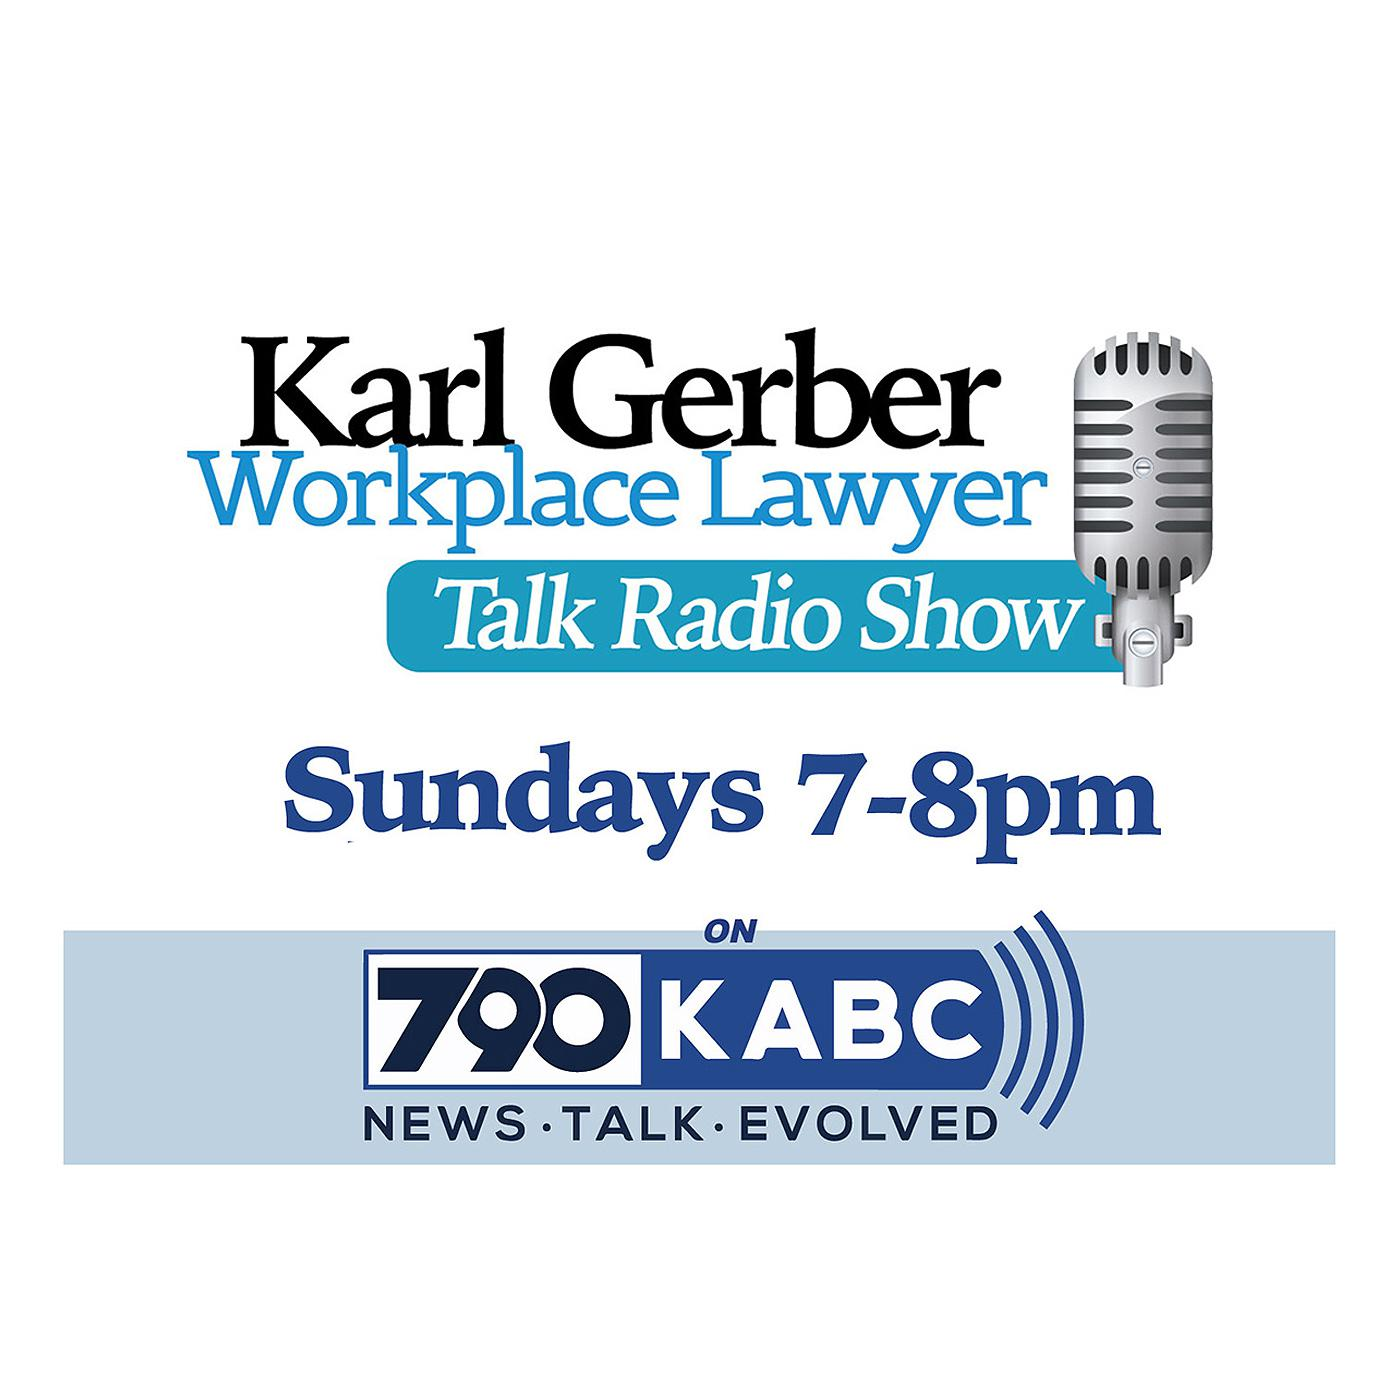 Karl Gerber Workplace Lawyer (podcast) - Karl Gerber